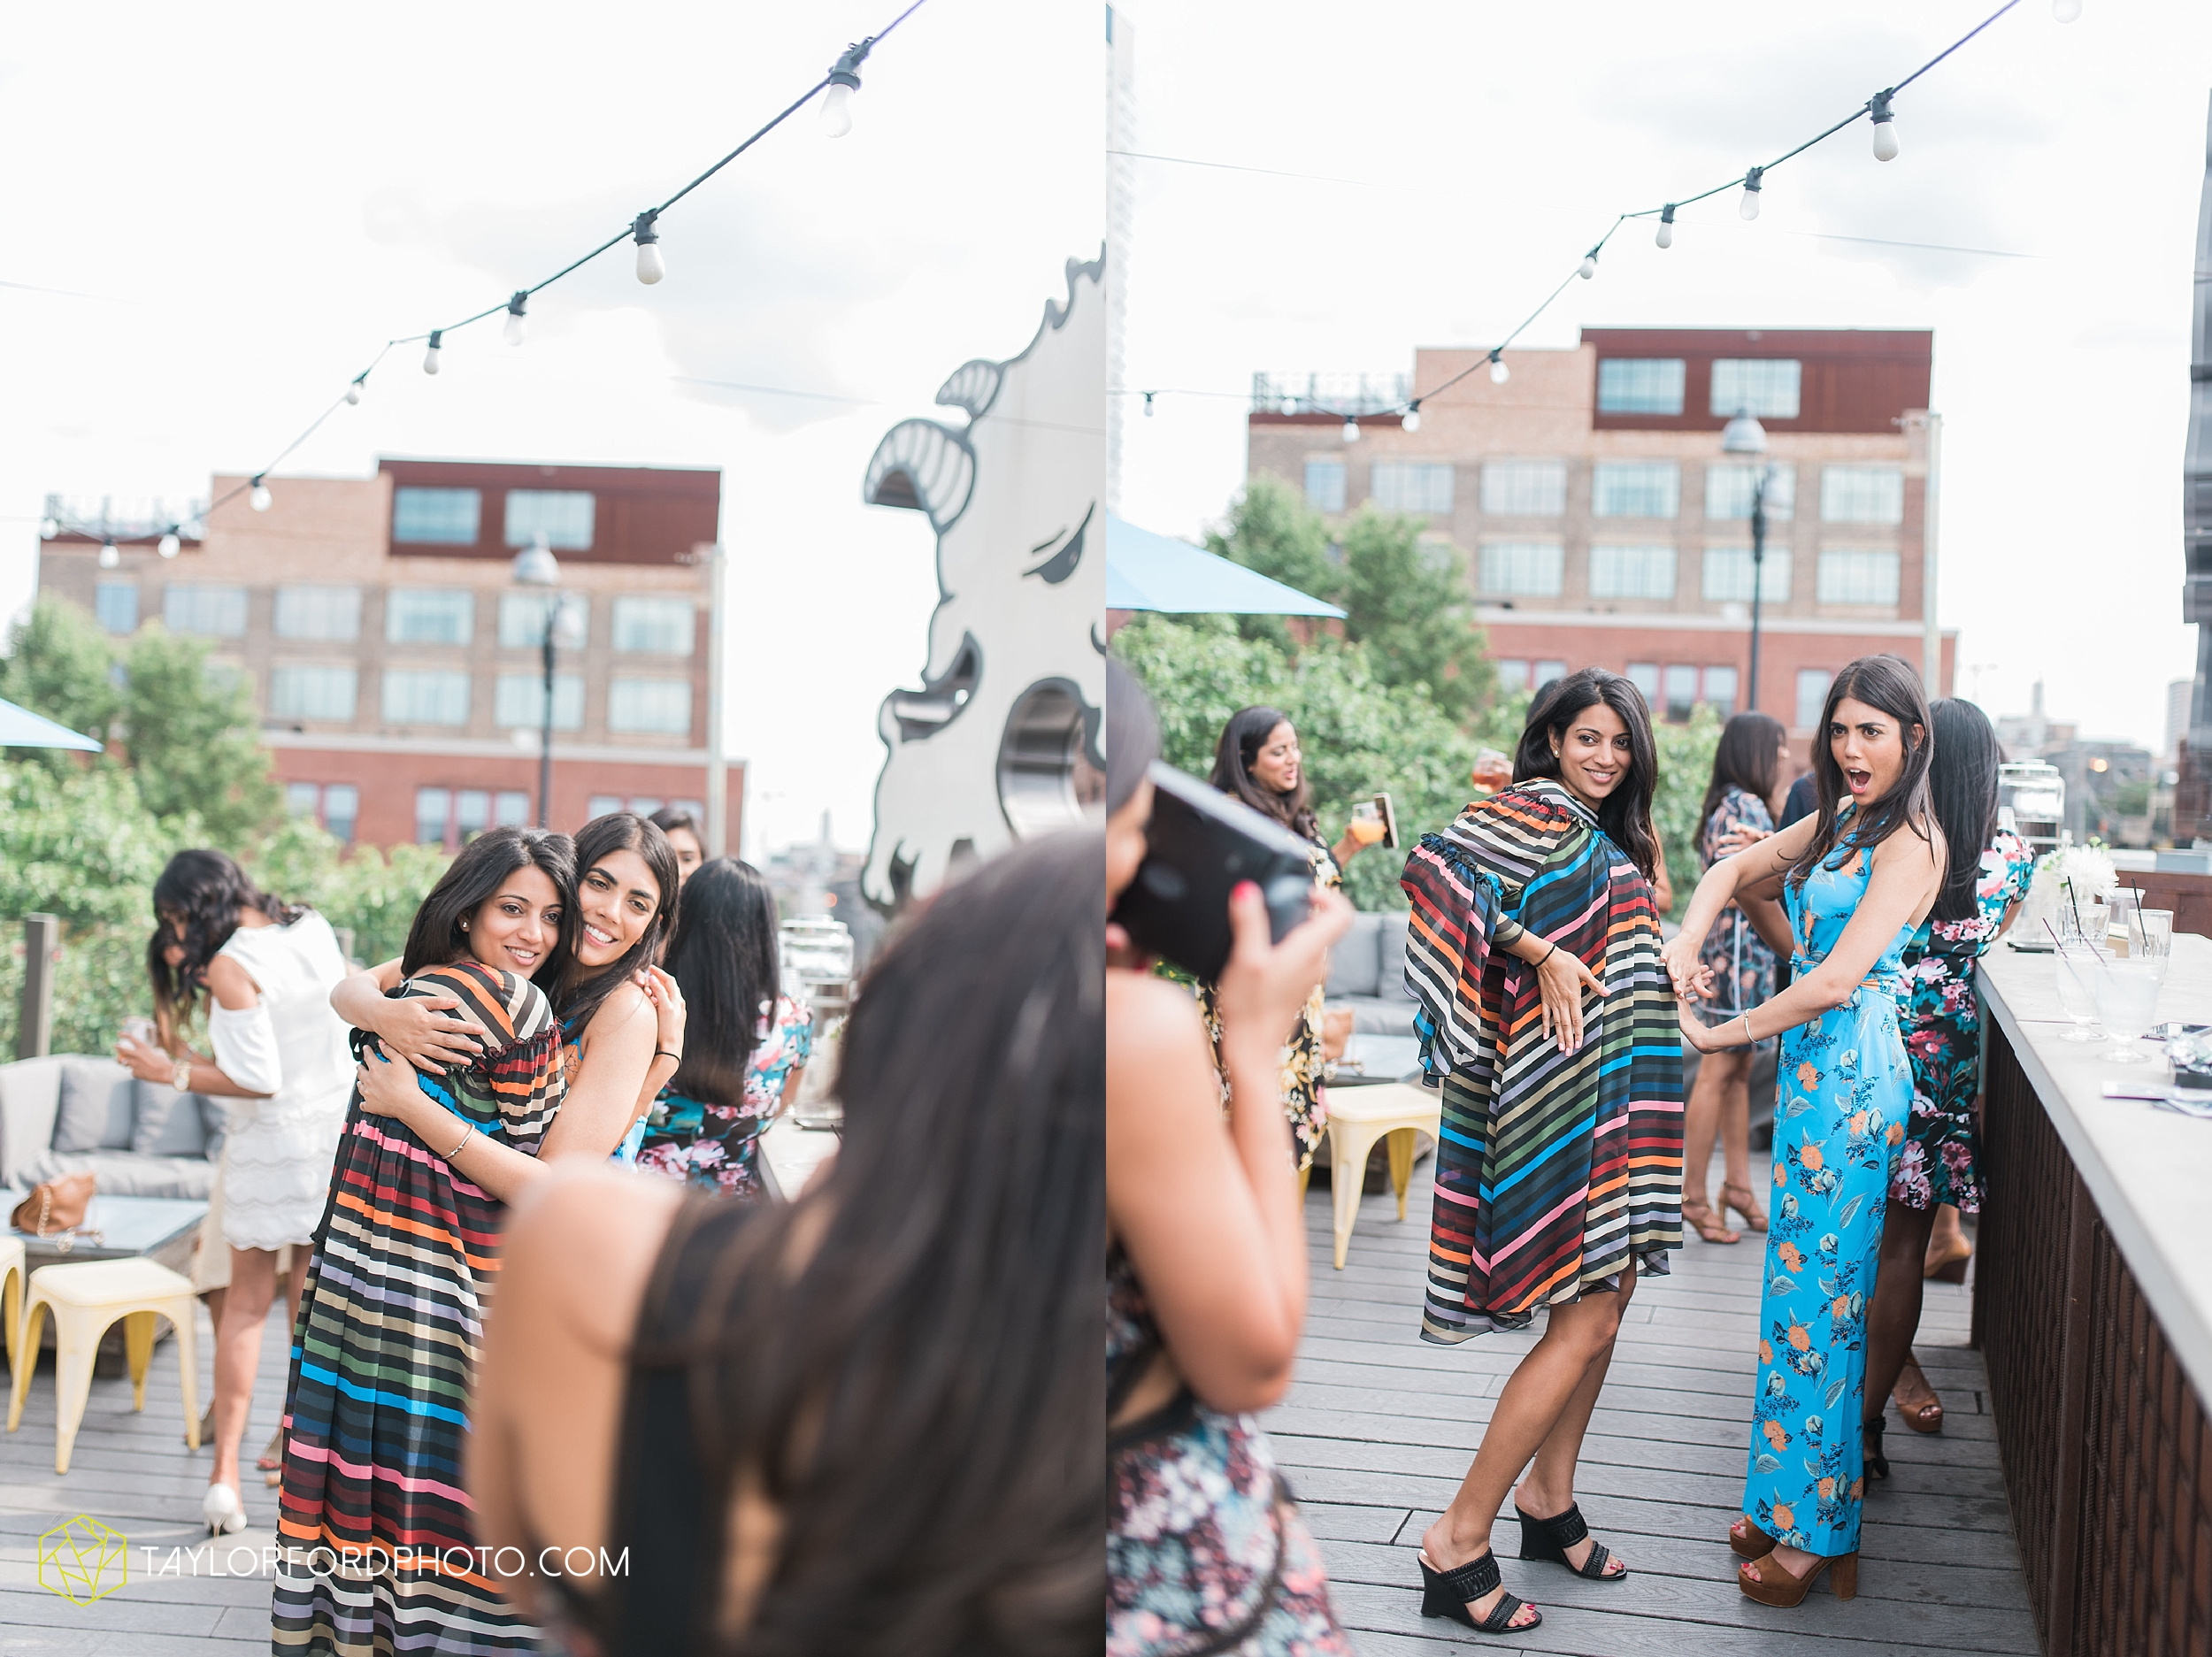 chicago-illinois-bridal-shower-wedding-engagement-photographer-Taylor-Ford-Photography-the-little-goat-diner-rooftop-indian-ceremony_5123.jpg